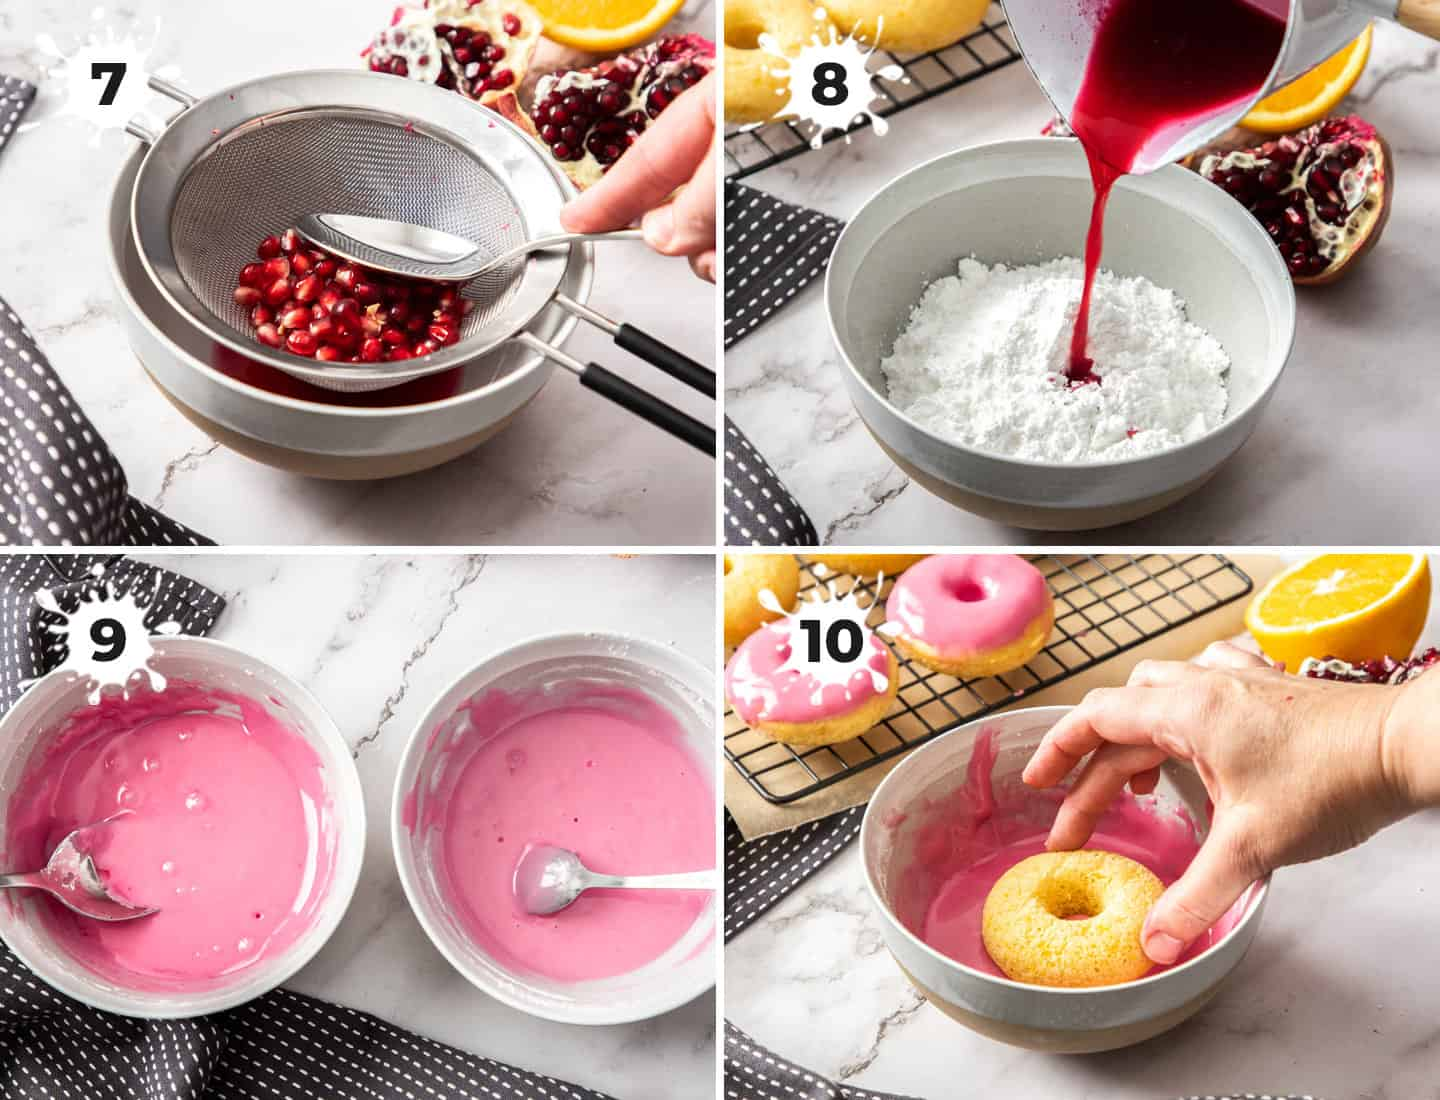 A collage of 4 images showing how to make pomegranate icing.